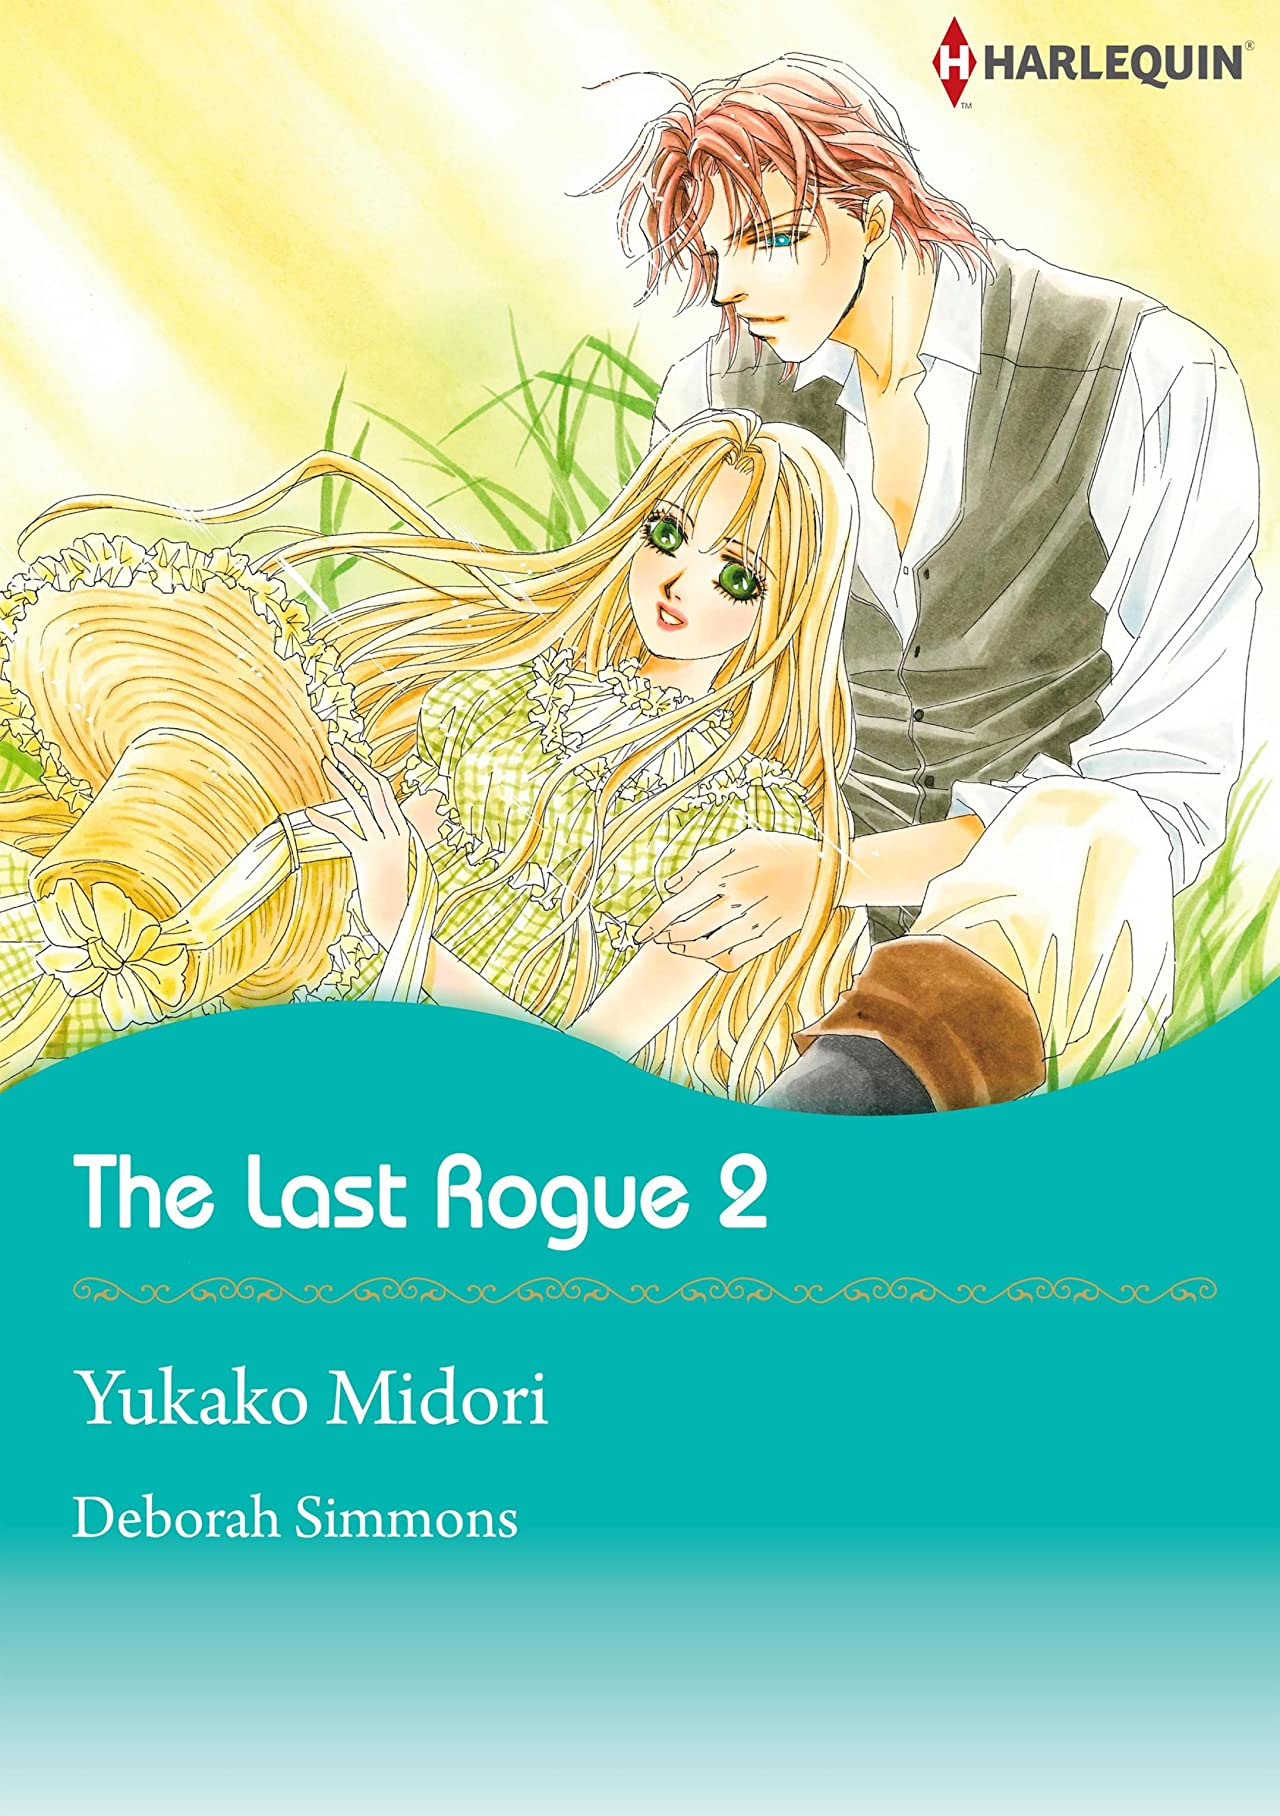 The Last Rogue 2 #2